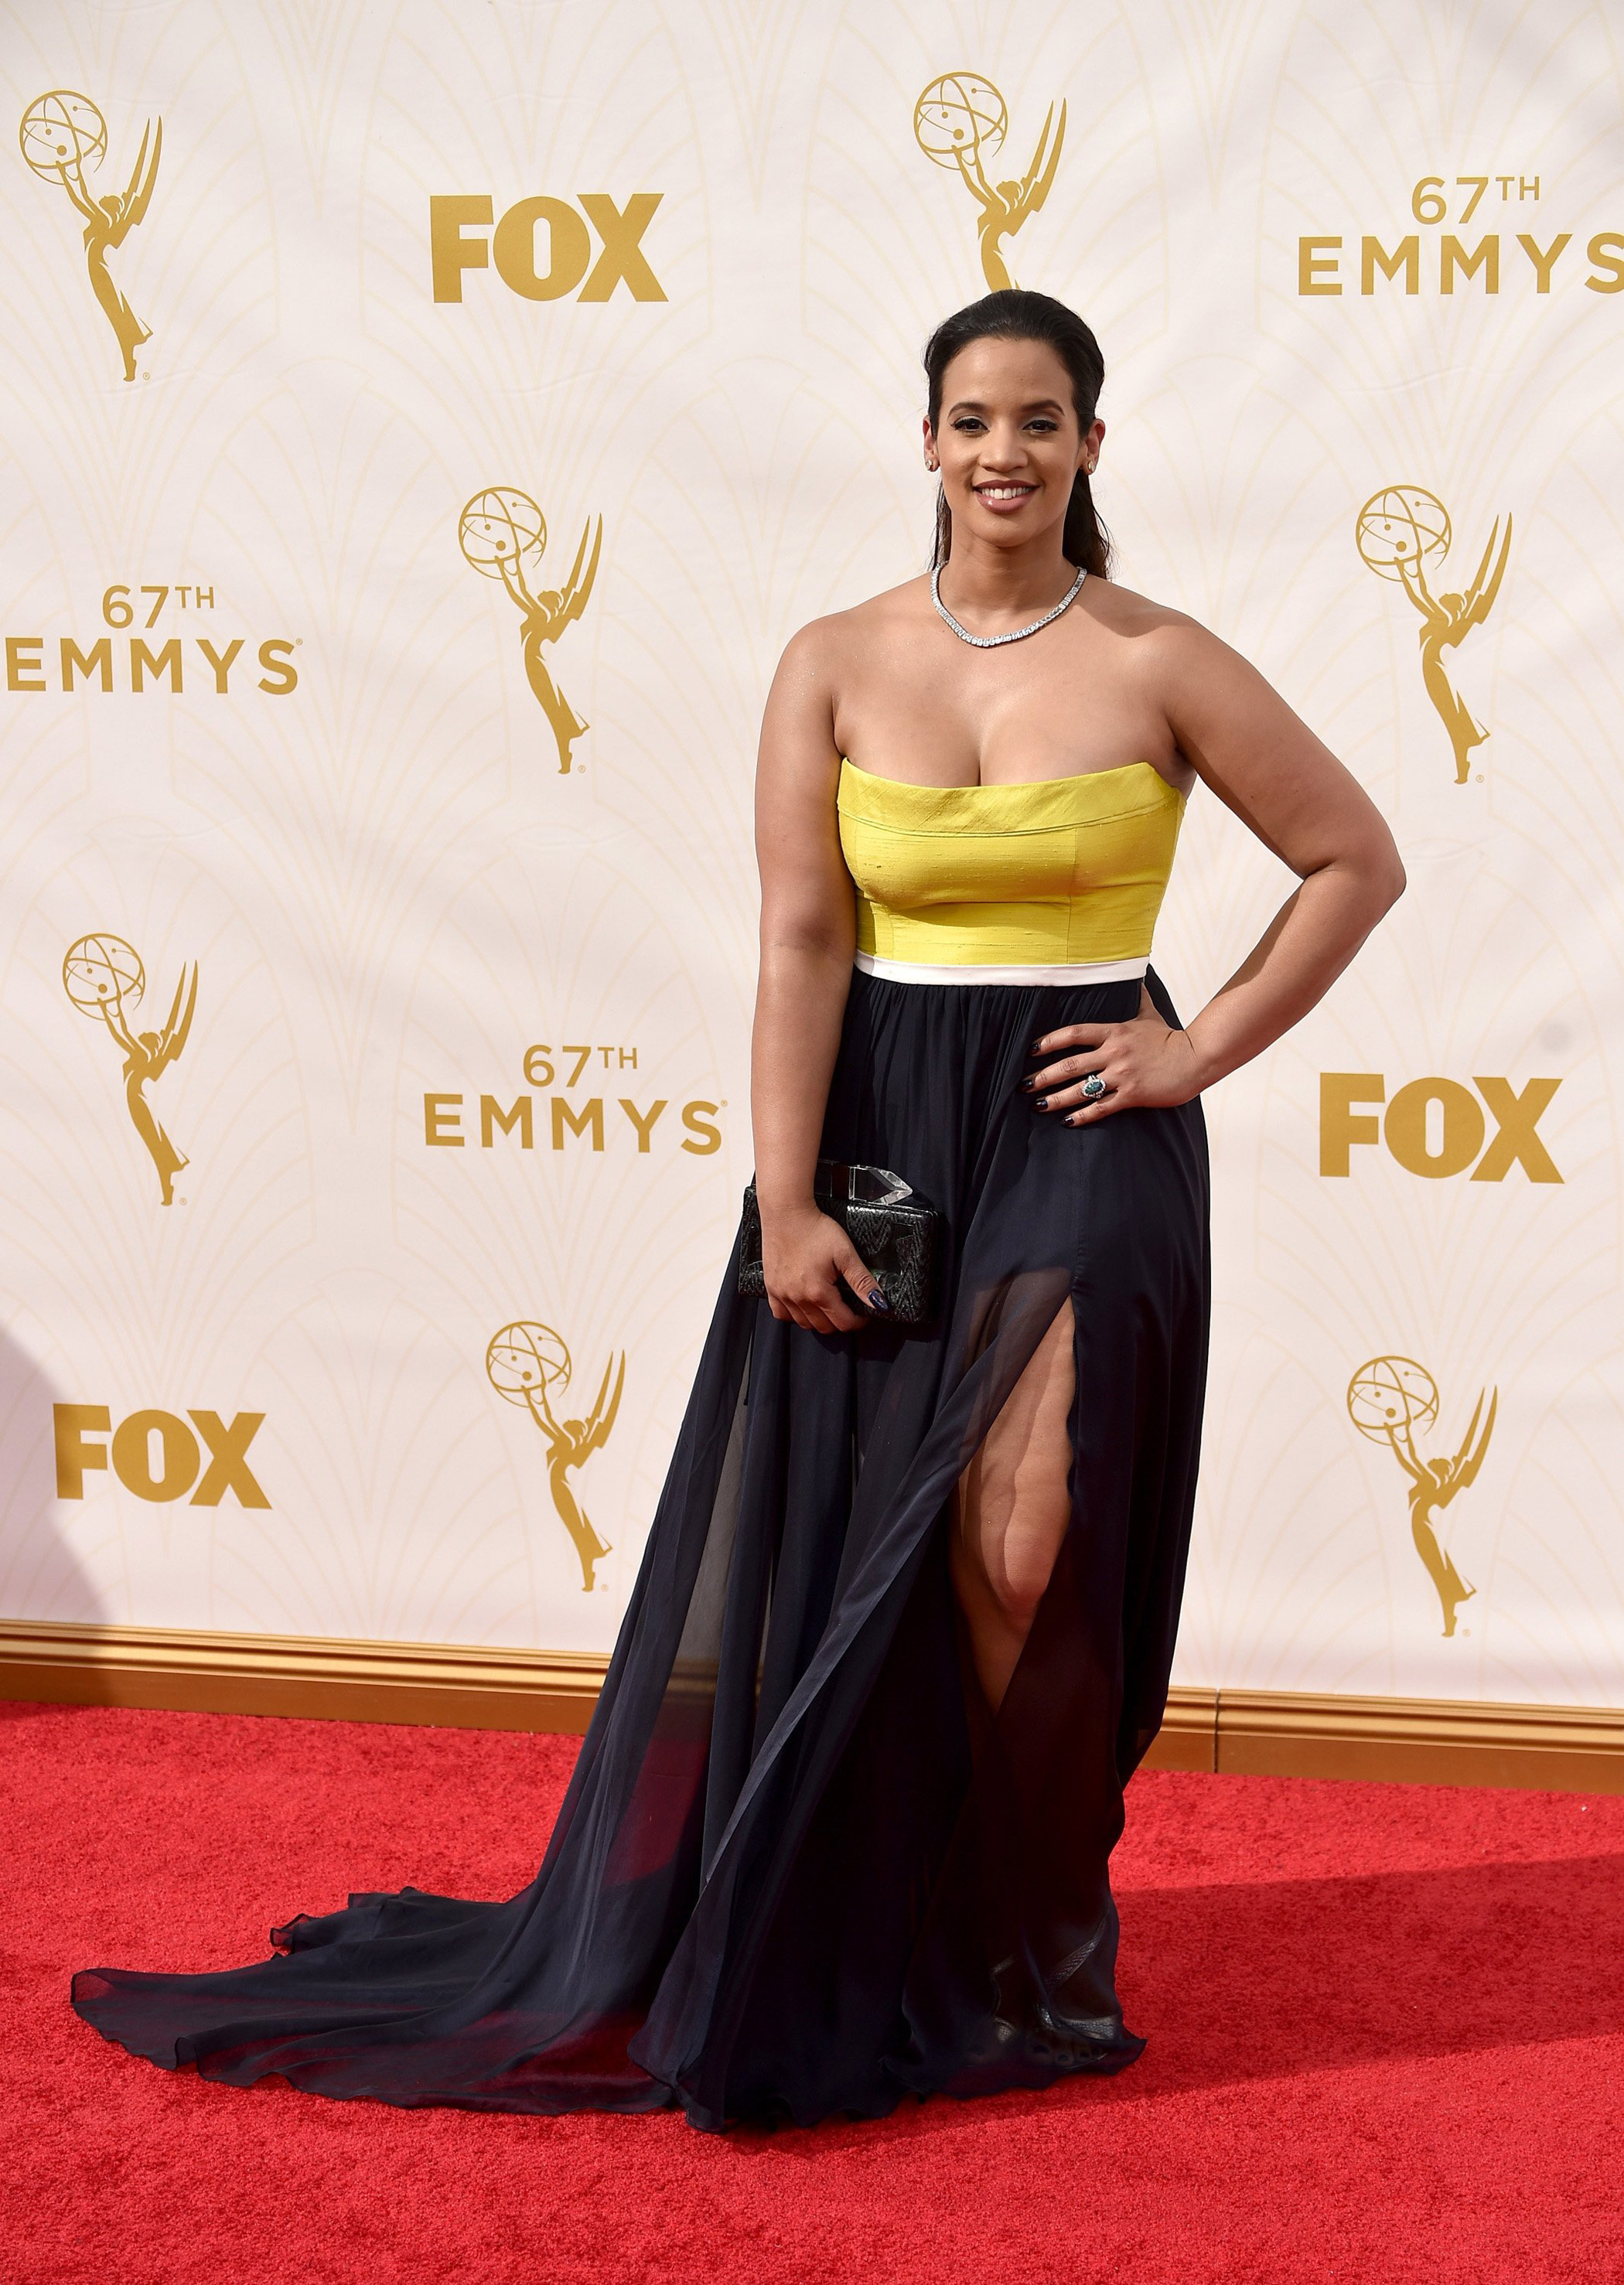 Dascha Polanco at the 67th Emmy Award on Sept. 20, 2015 in Los Angeles.